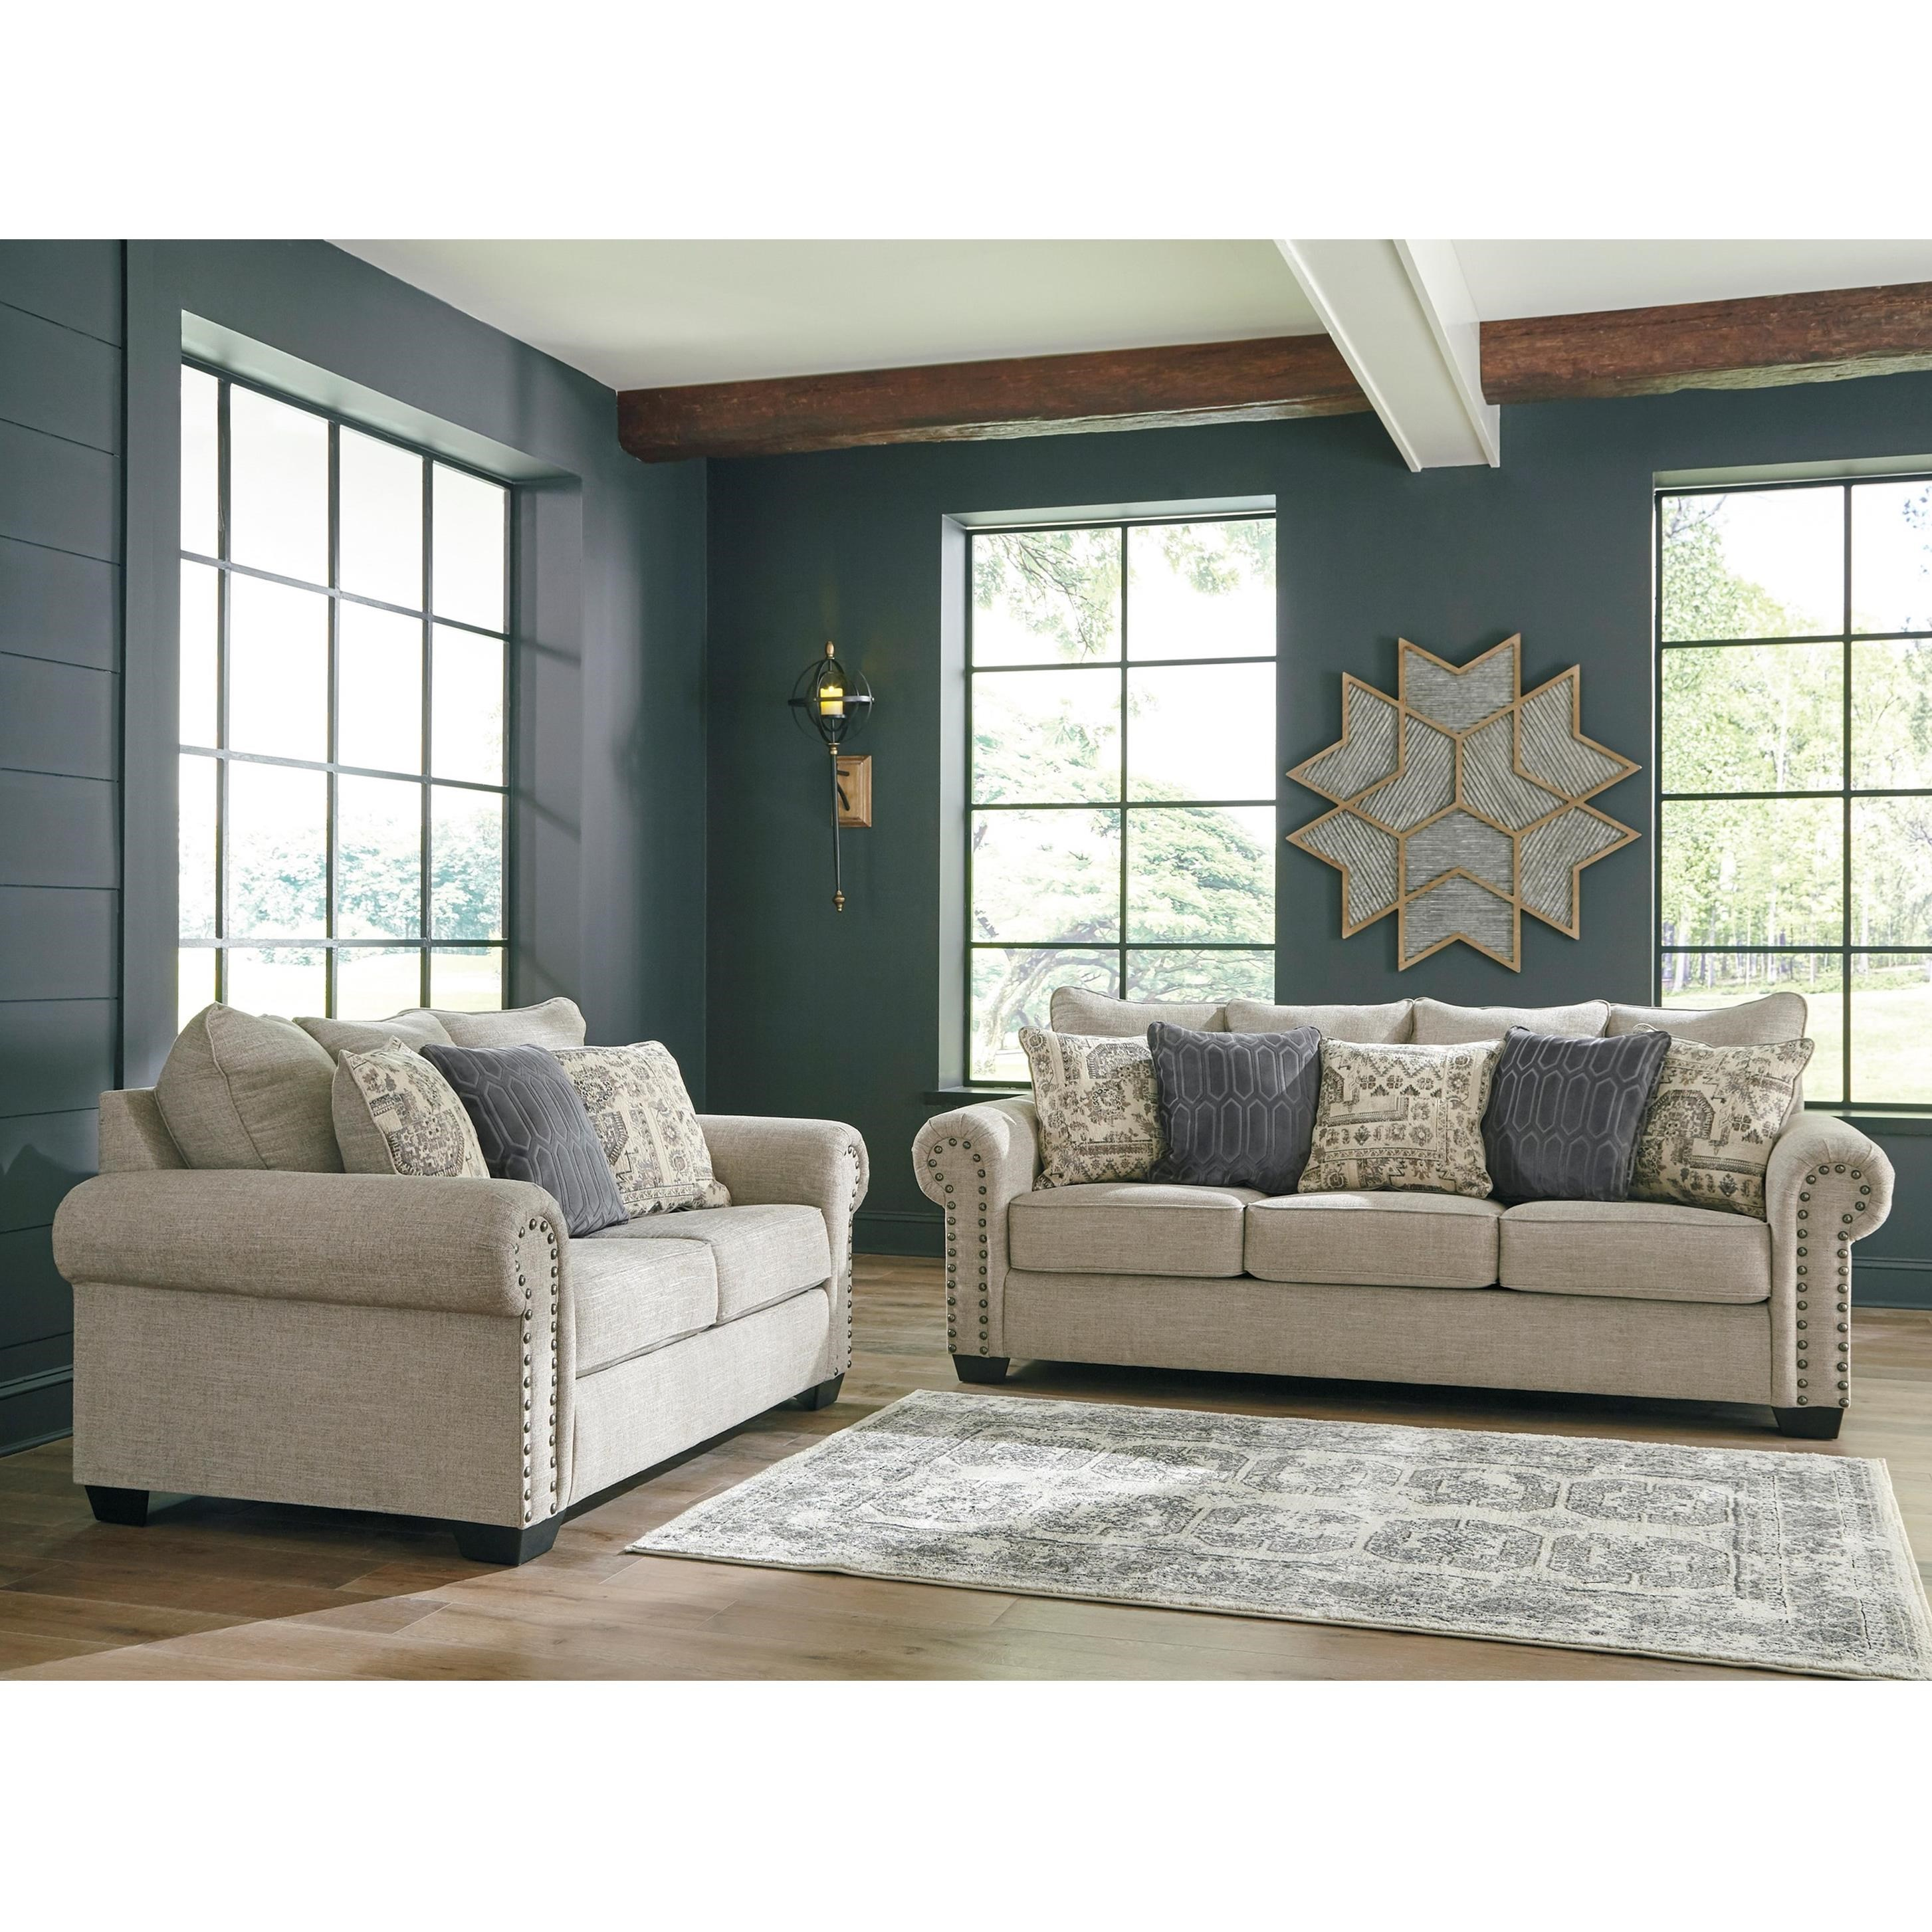 Zarina Stationary Living Room Group by Signature Design by Ashley at Furniture Barn